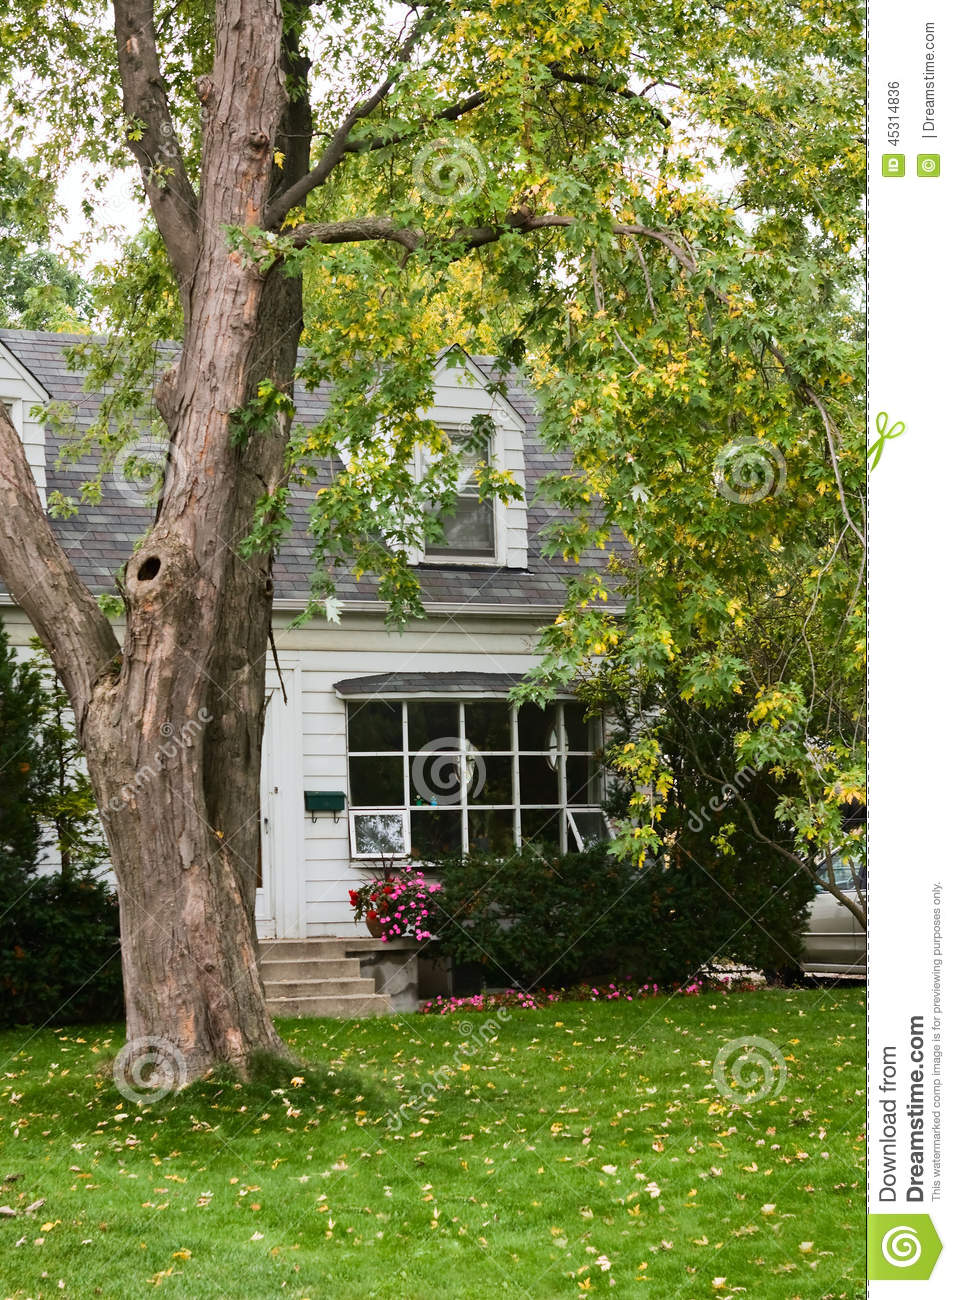 Vieille maison de campagne en automne photo stock image for Vieille maison de campagne